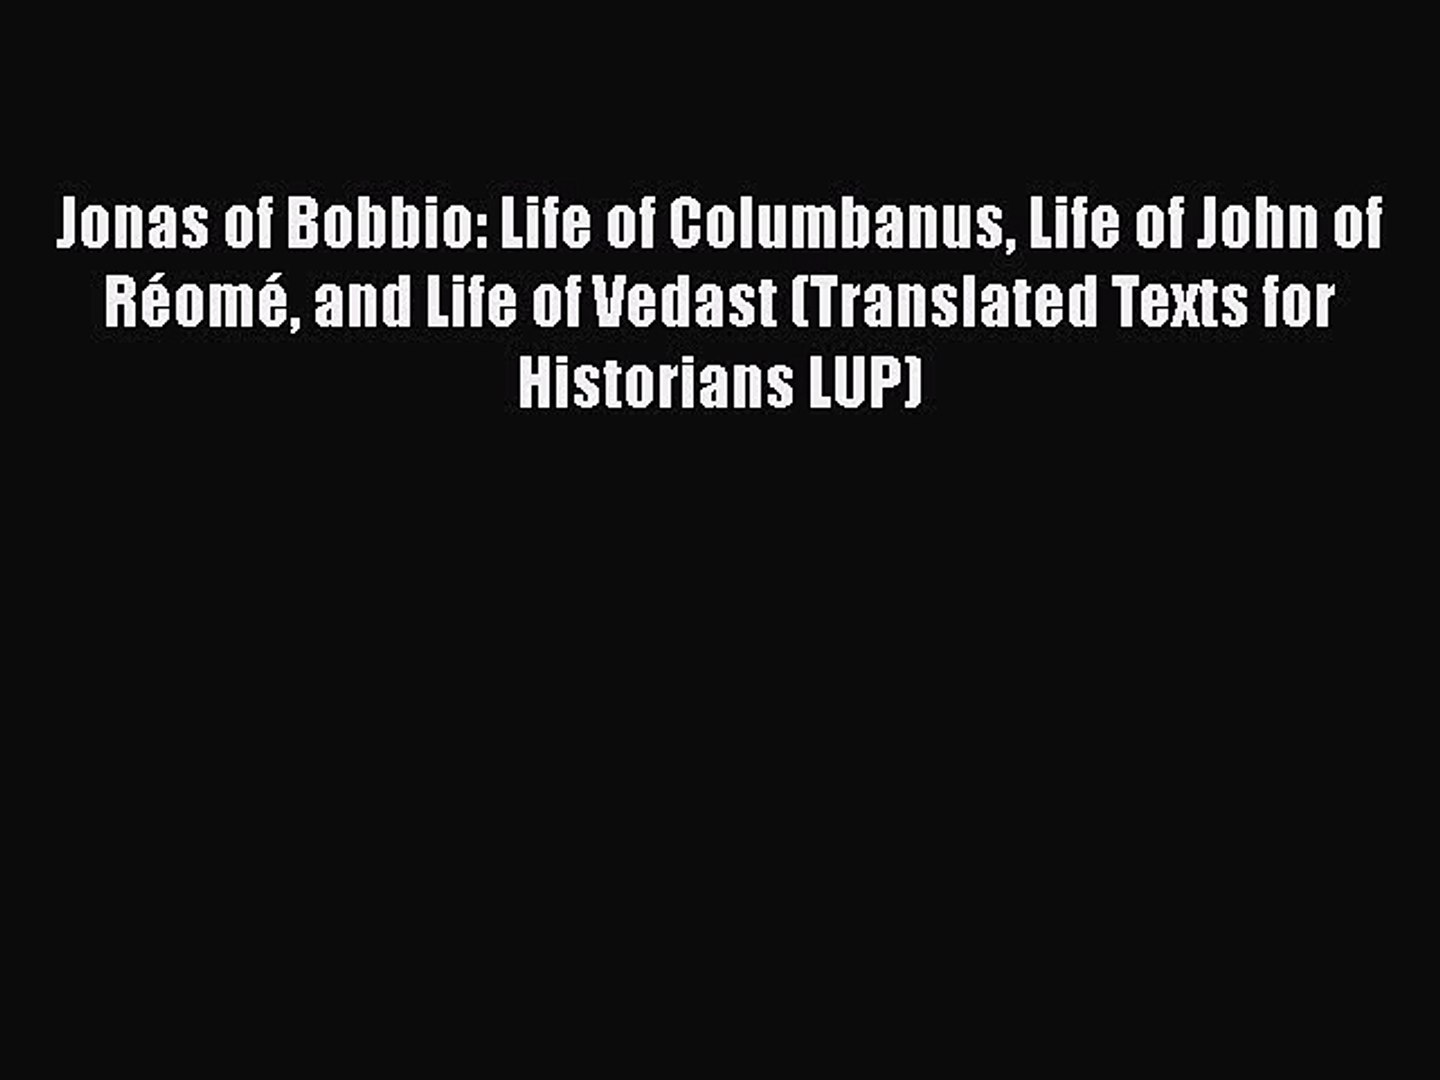 Download Jonas of Bobbio: Life of Columbanus Life of John of Réomé and Life of Vedast (Translated